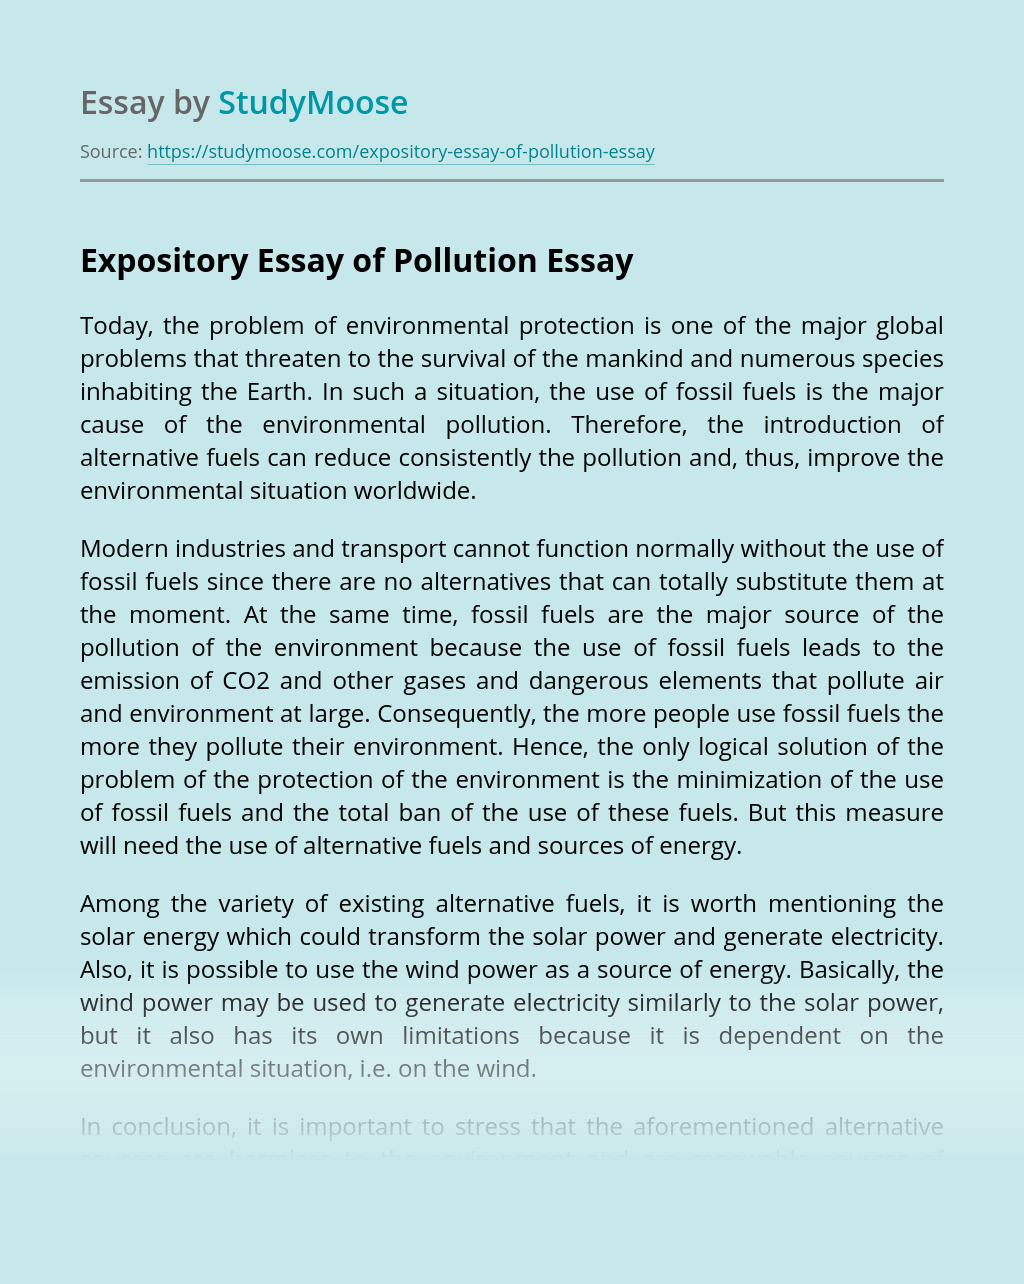 Expository Essay of Pollution